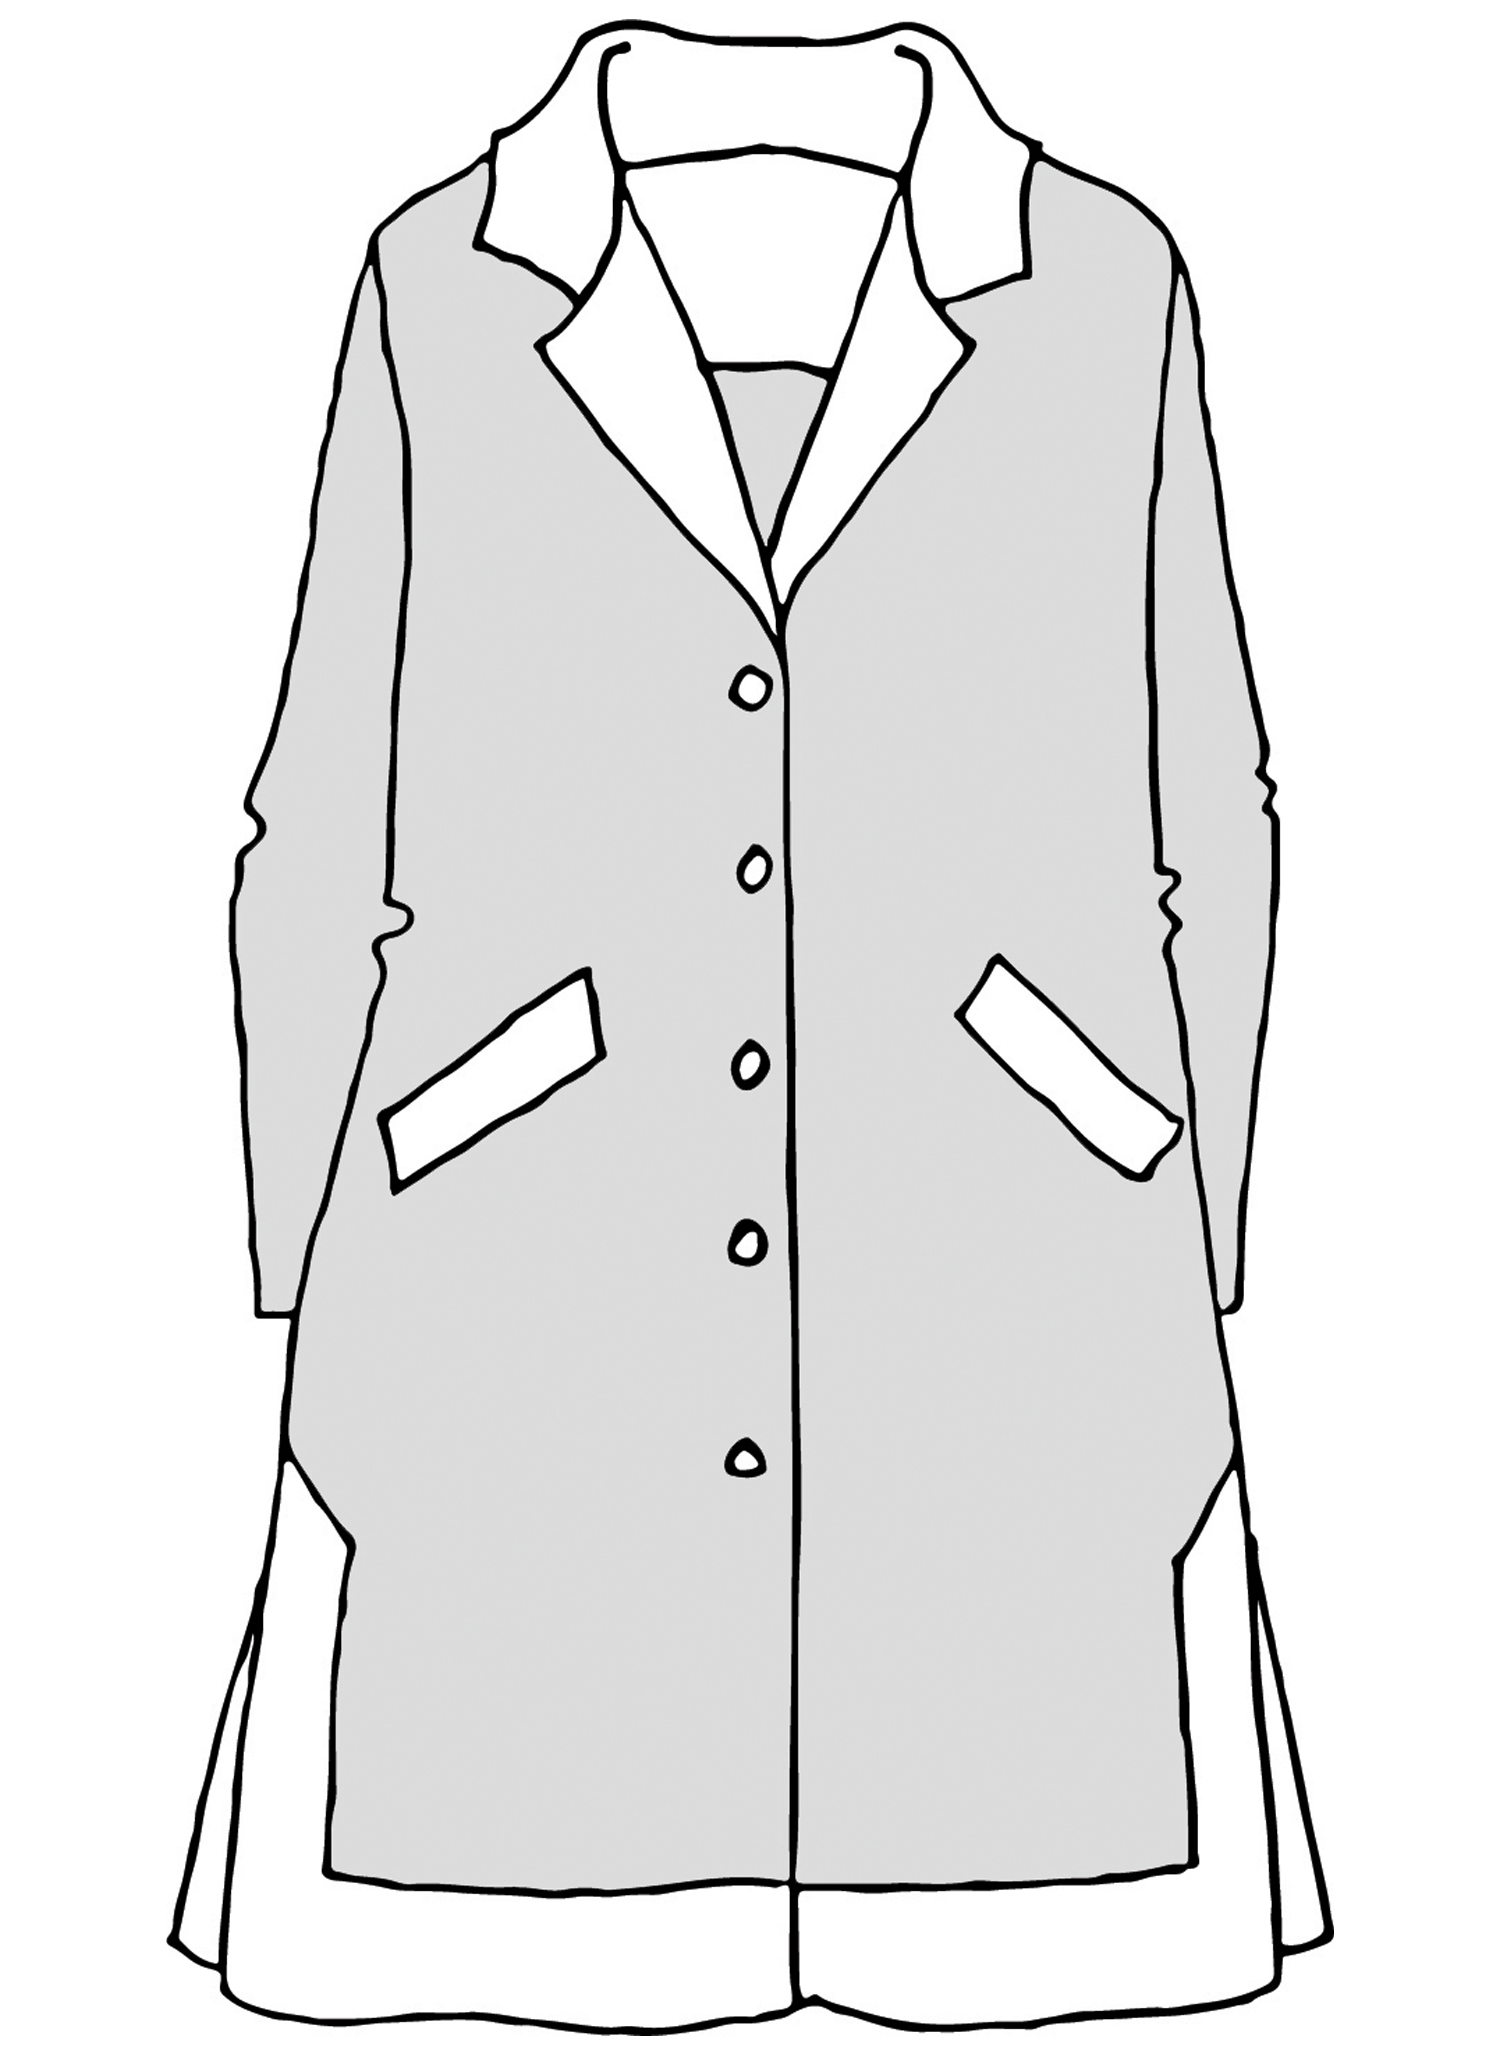 Suave Jacket sketch image